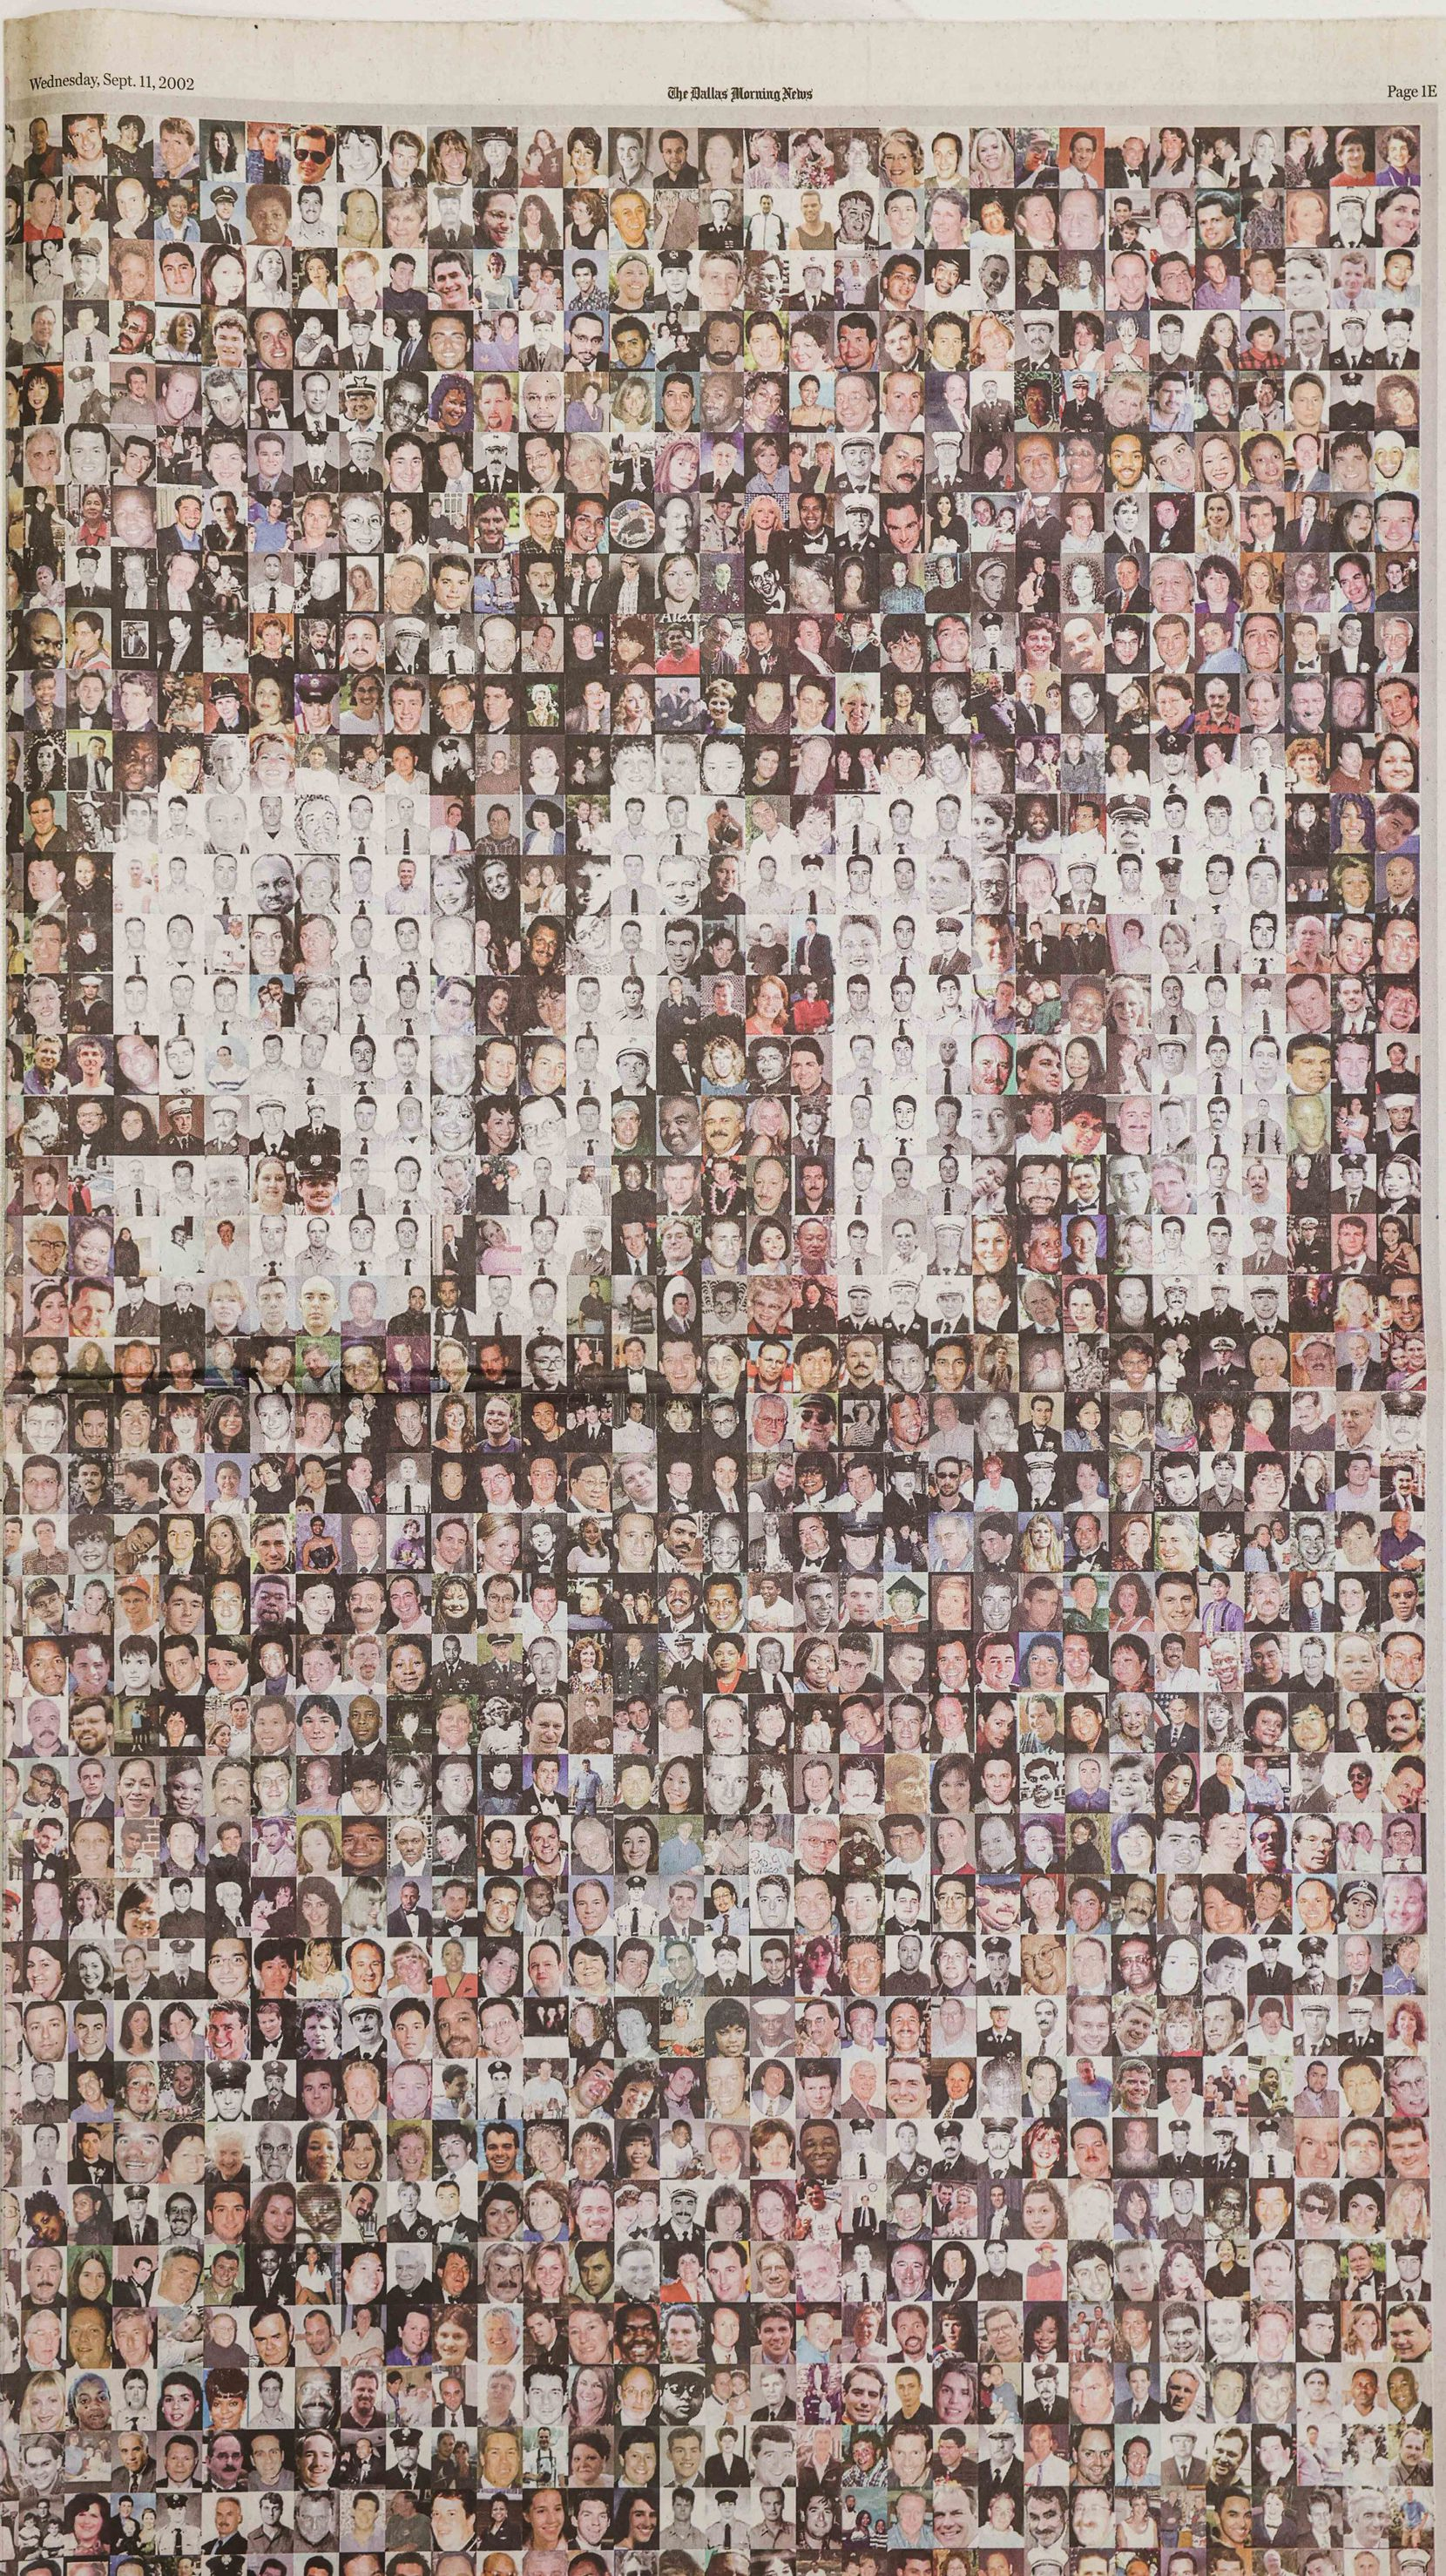 Photos of victims on the cover of the 2002 anniversary special edition.